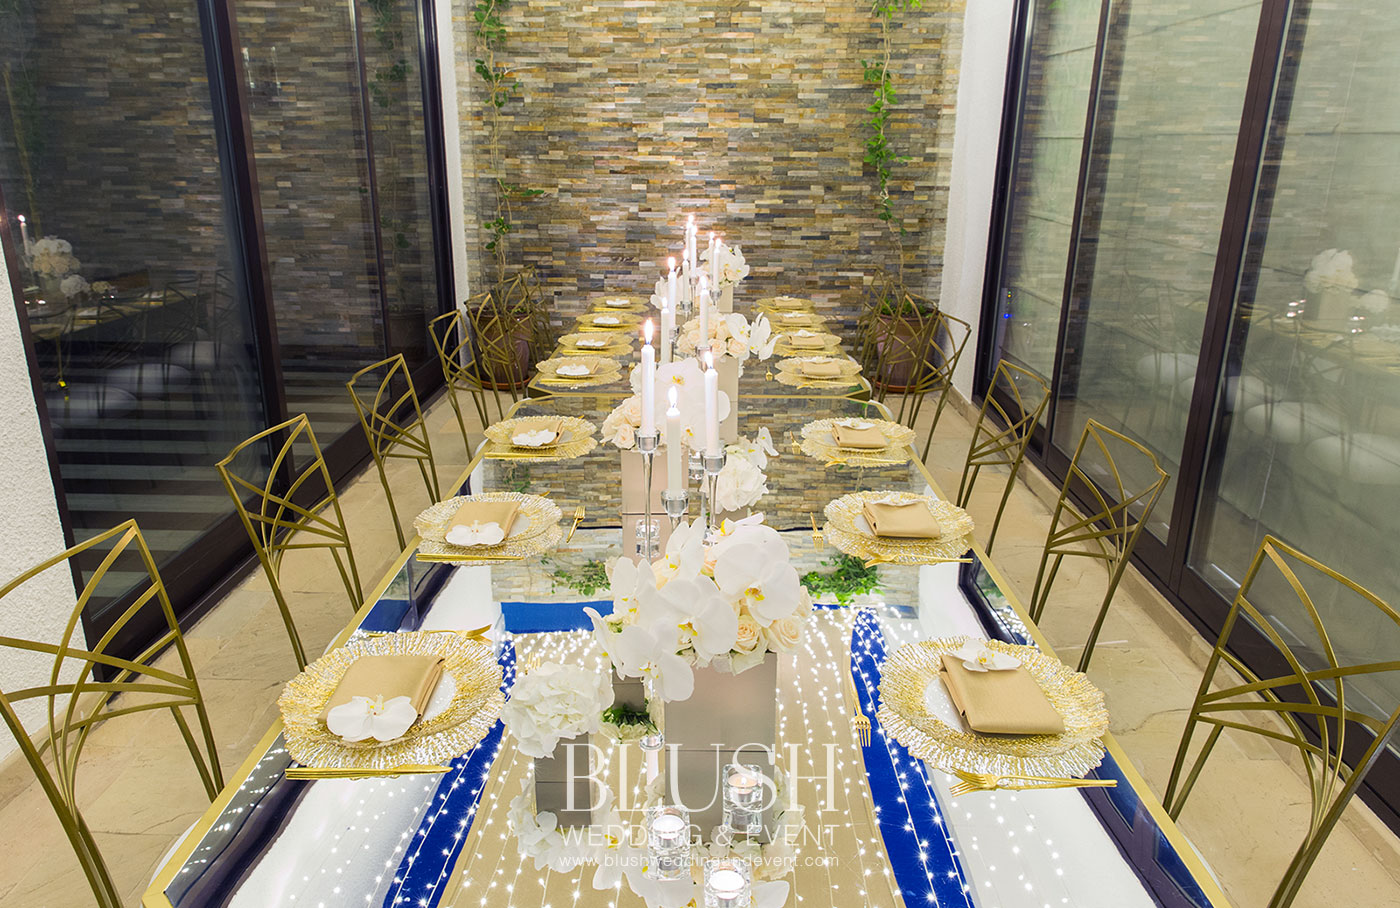 Birthday Dinner Setup in Dubai-Dubai Event Planning